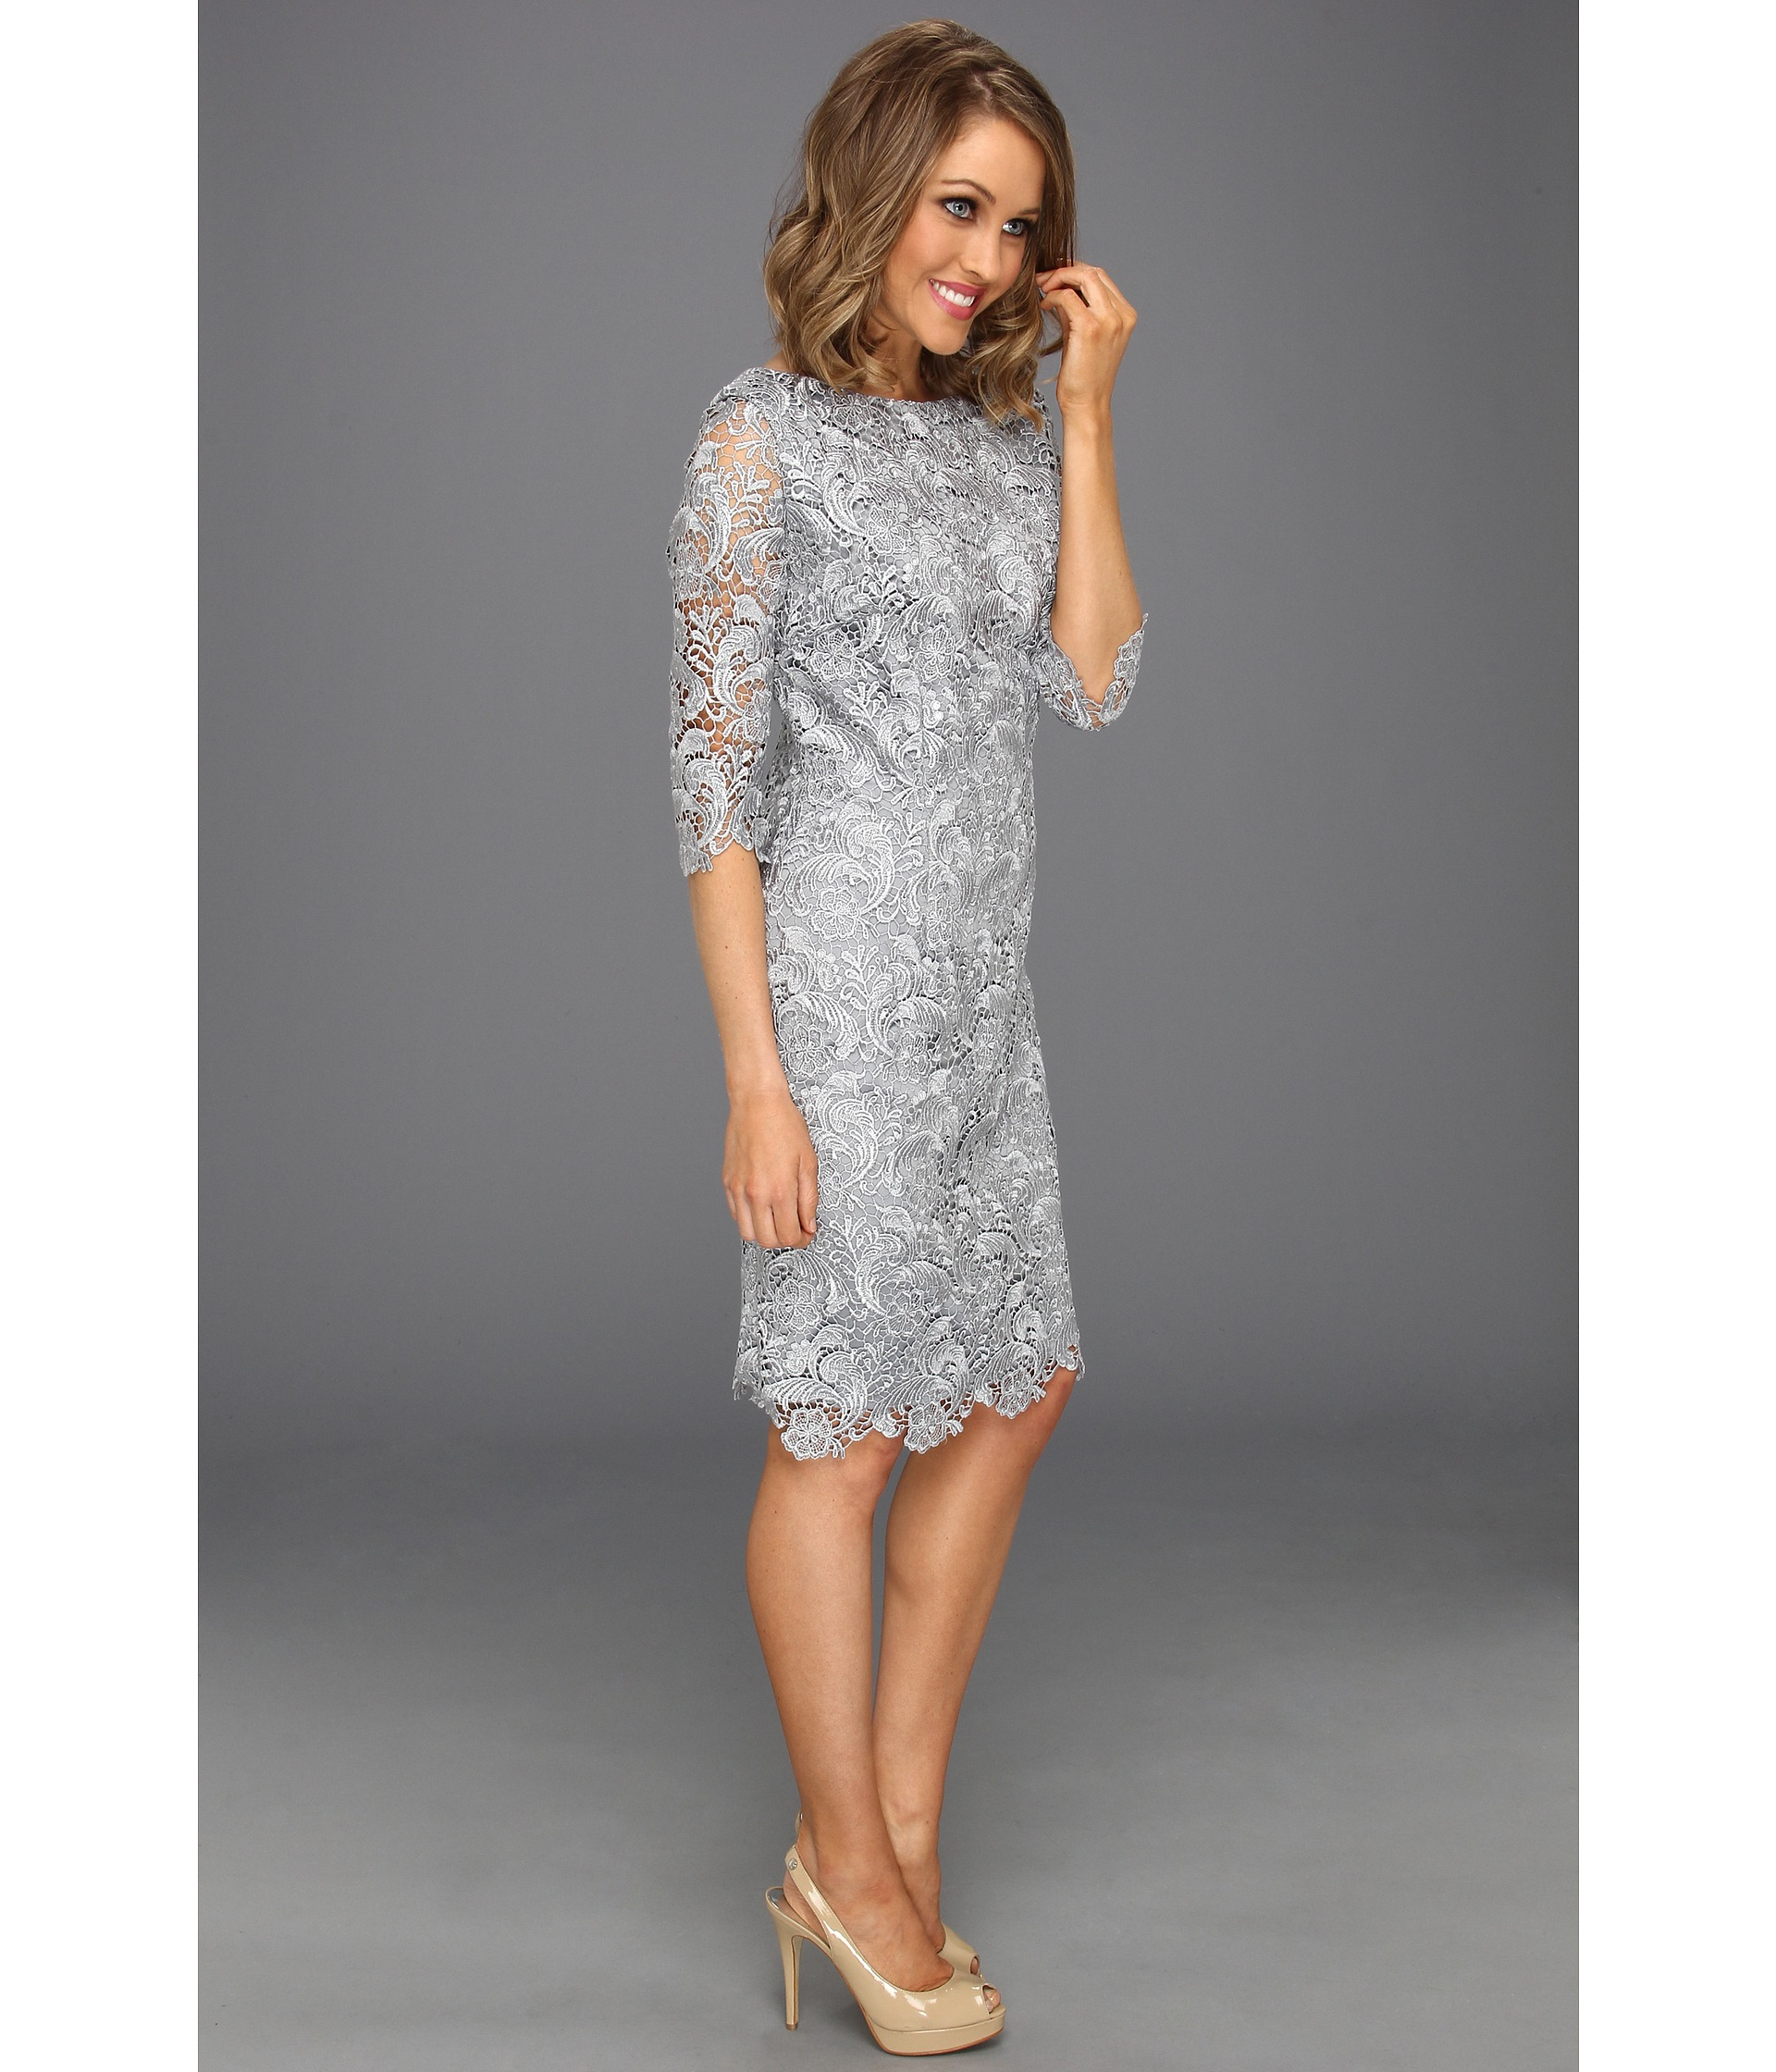 Eliza j 3/4 Sleeve Lace Sheath Dress in Gray | Lyst